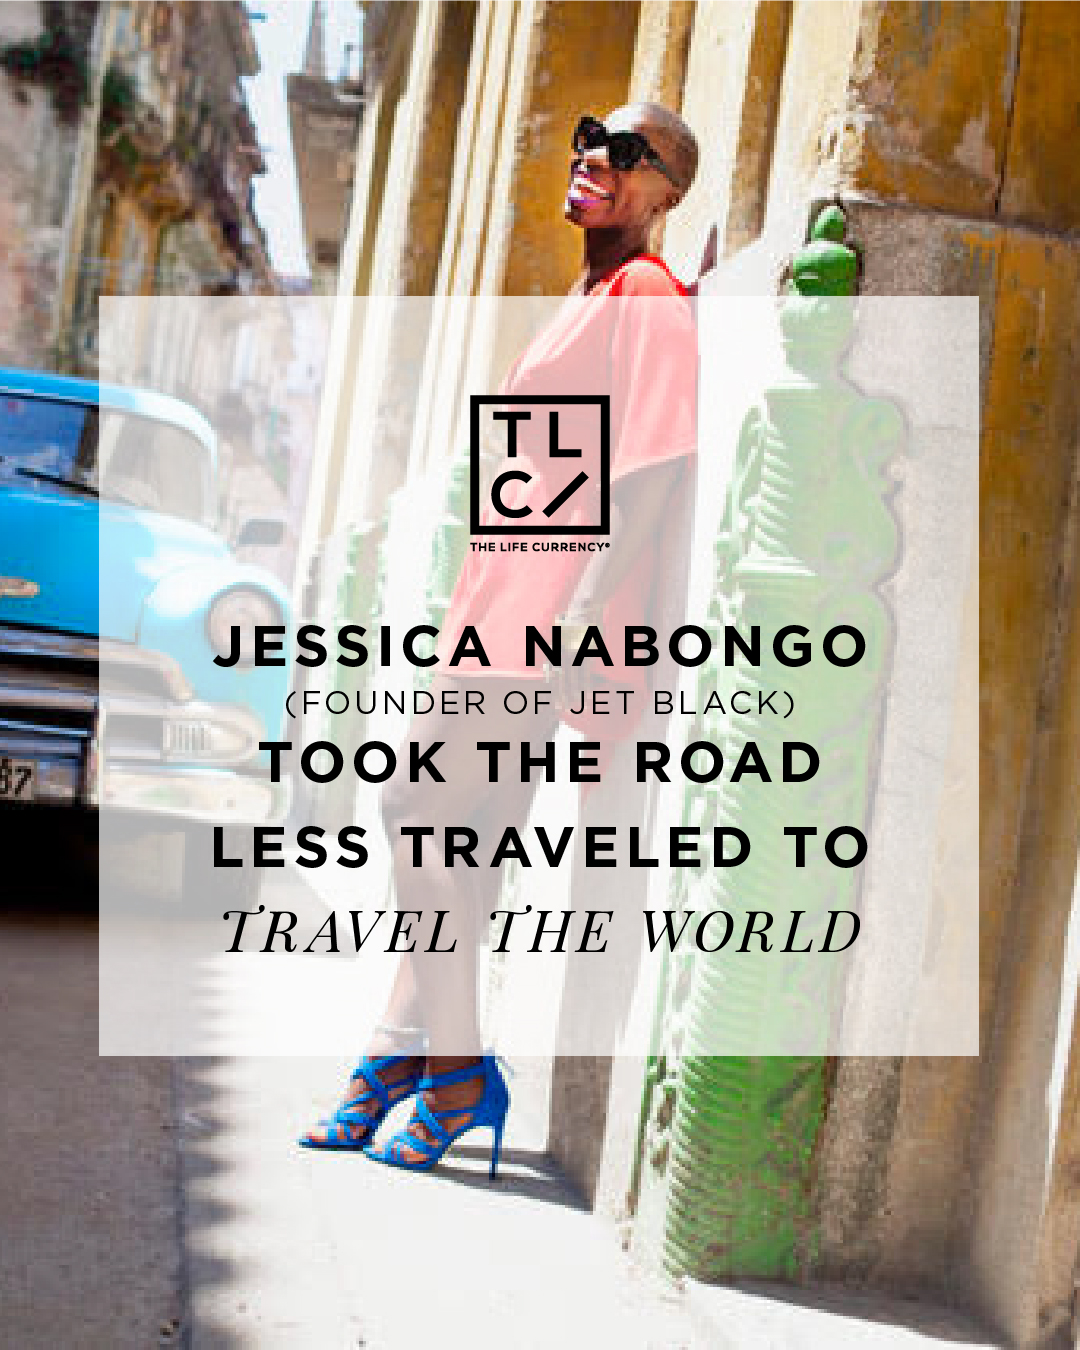 Jessica Nabongo, Founder of Jet Black, Took the Road Less Traveled to Travel the World